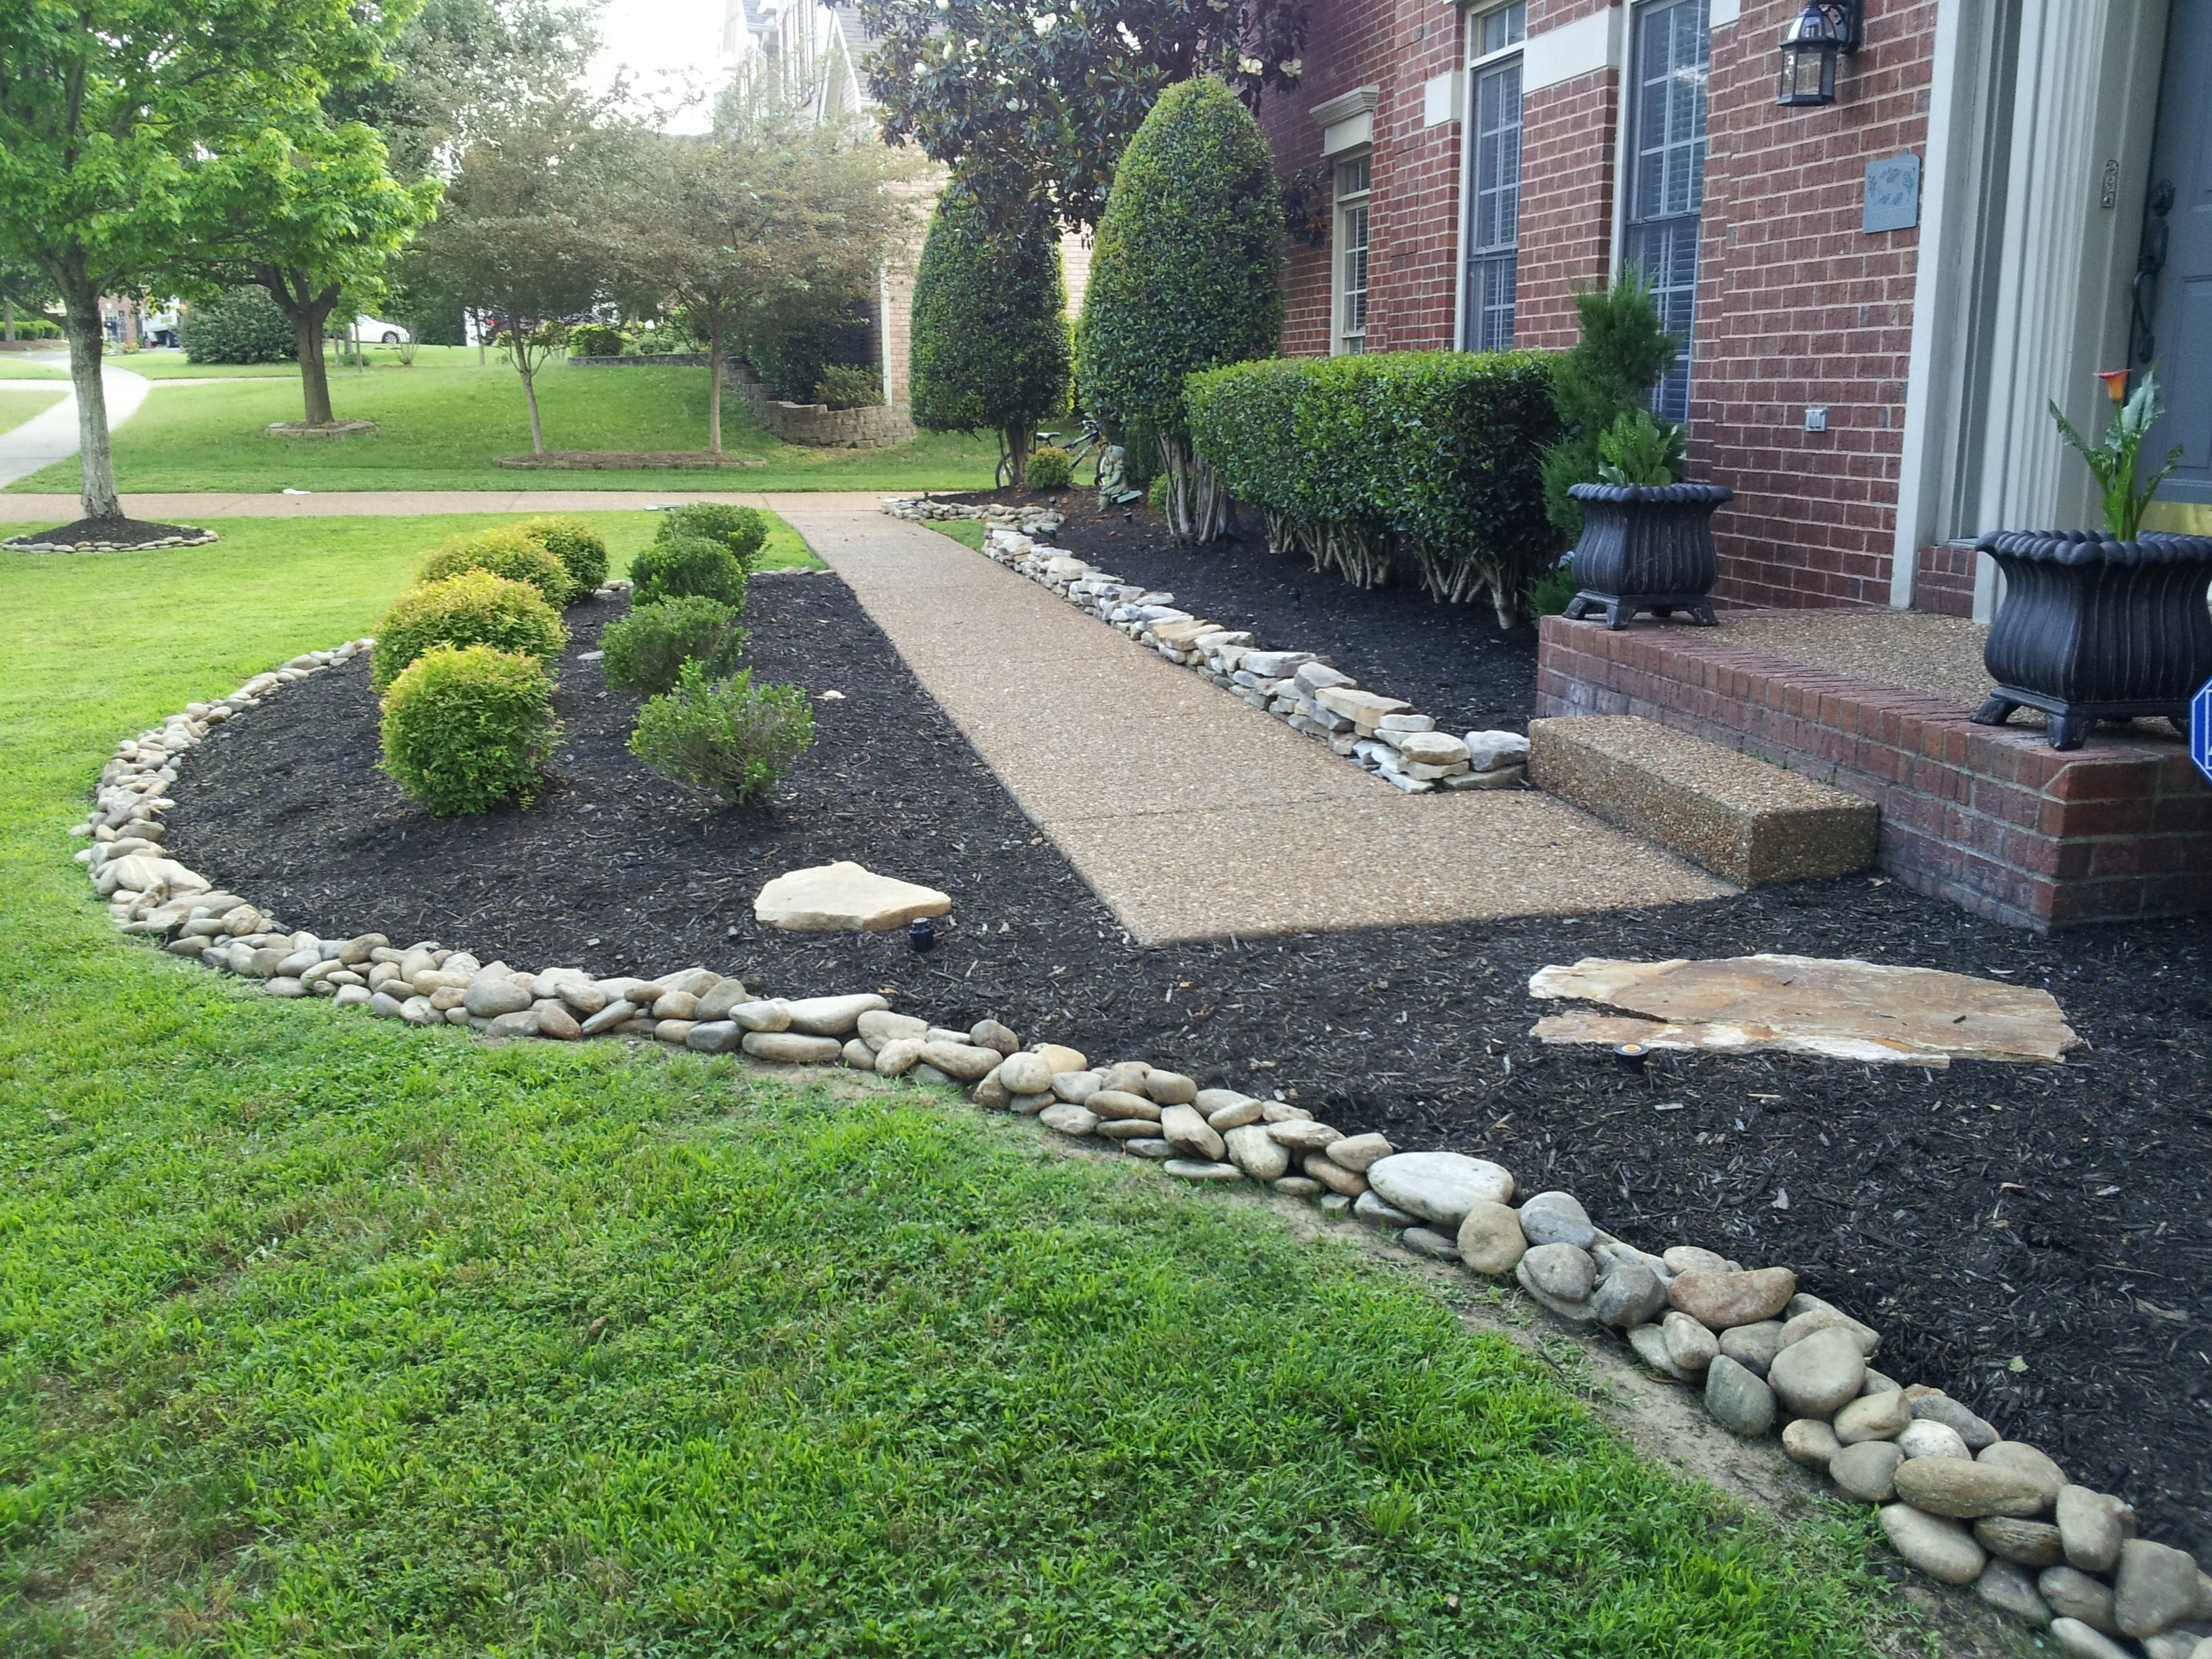 River Rock Design Ideas landscape rocks Landscaping With Stones And Rocks Instead Of Mulch Archives Franklin Stone